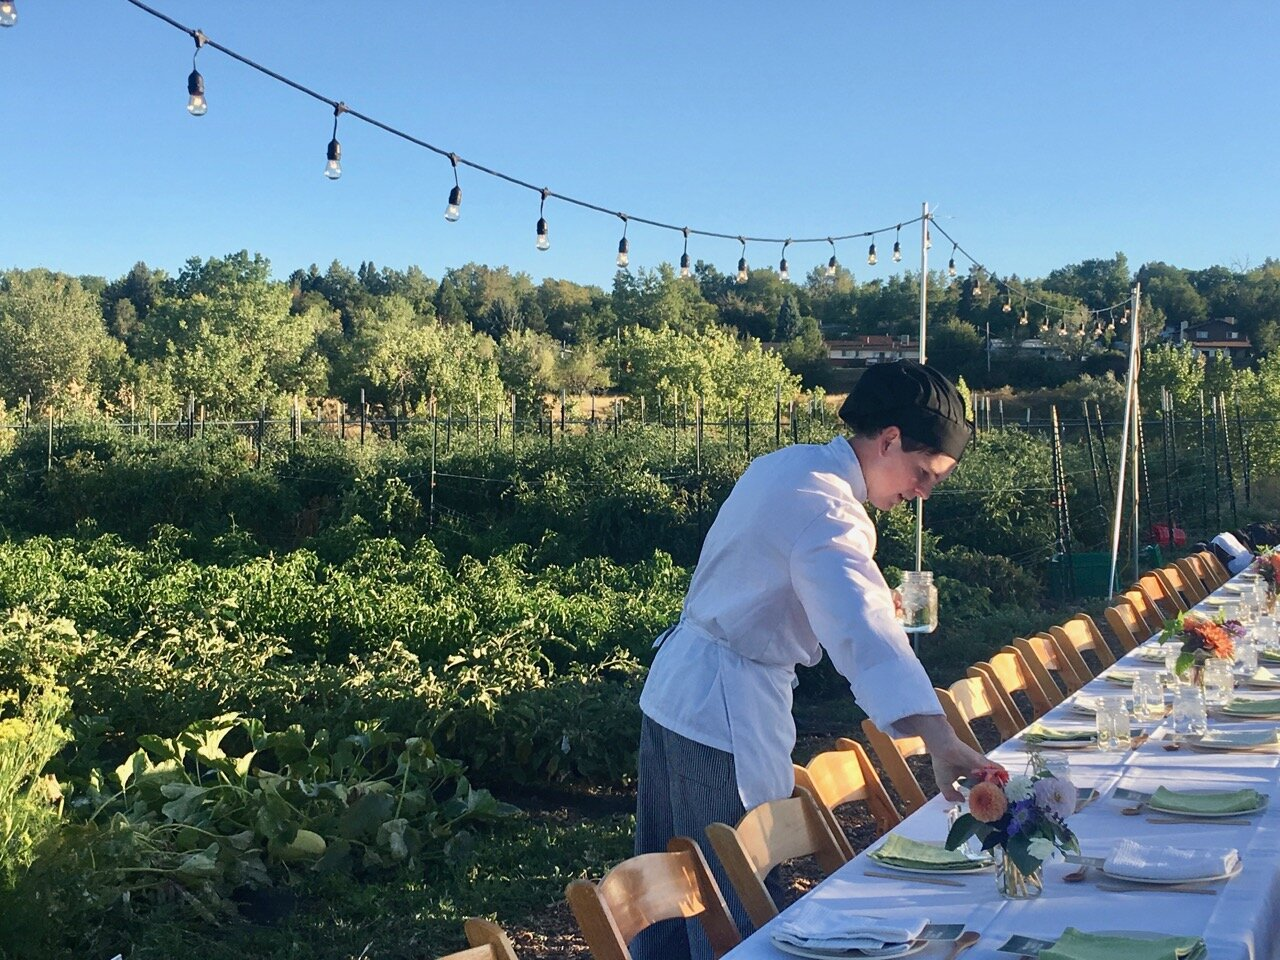 Student chef arranging dinner plates on a long table with white table cloth in a farm field with string lights above